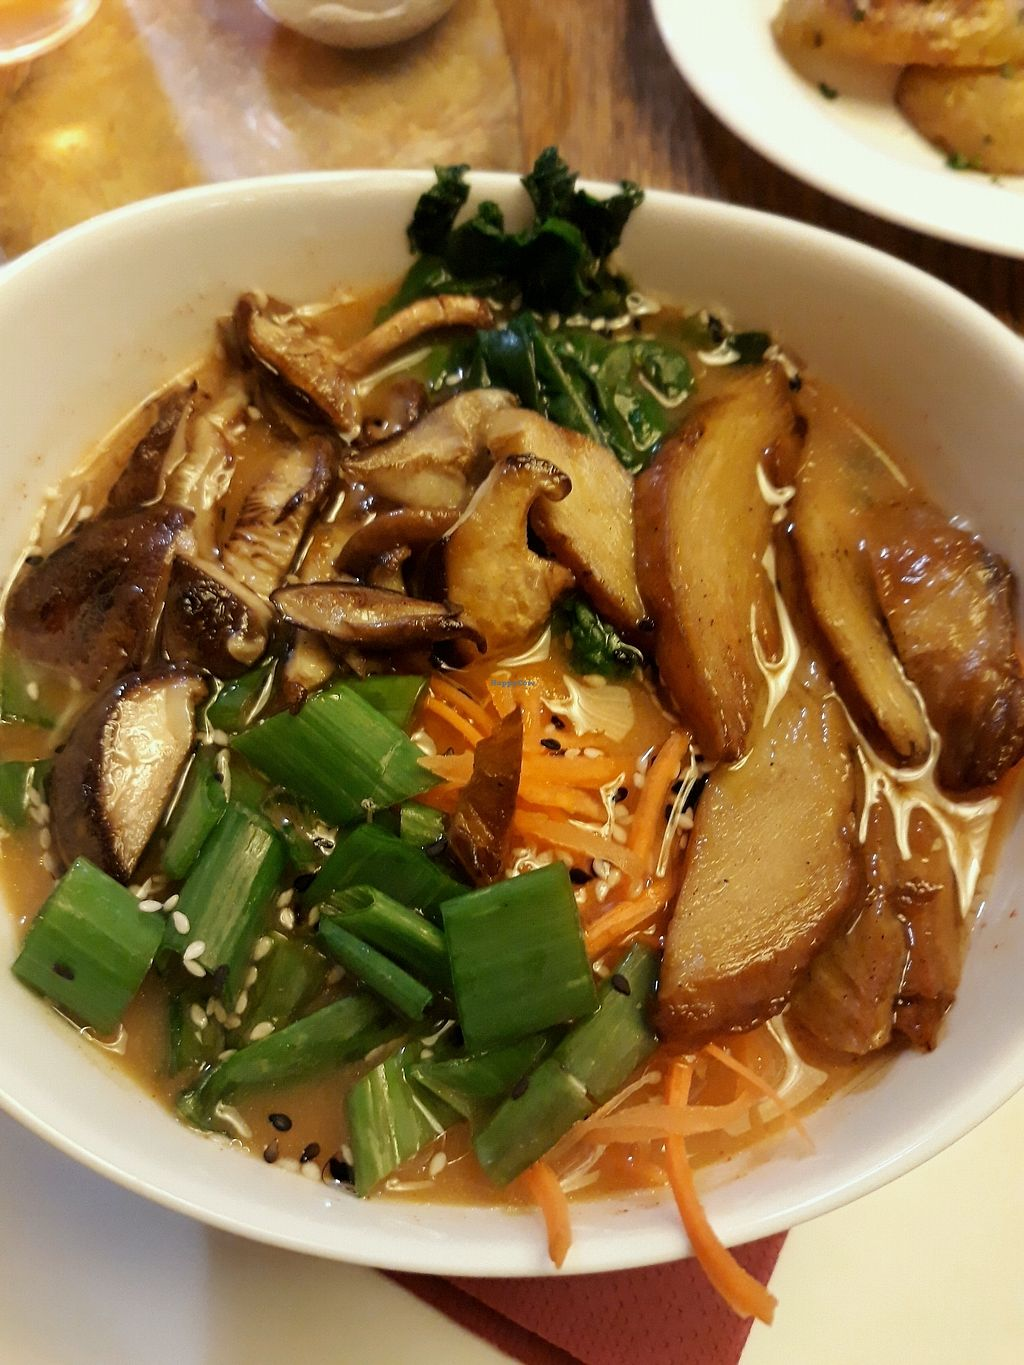 """Photo of Maitrea  by <a href=""""/members/profile/LLu"""">LLu</a> <br/>Piquant Soba noodles <br/> March 20, 2018  - <a href='/contact/abuse/image/17585/373423'>Report</a>"""